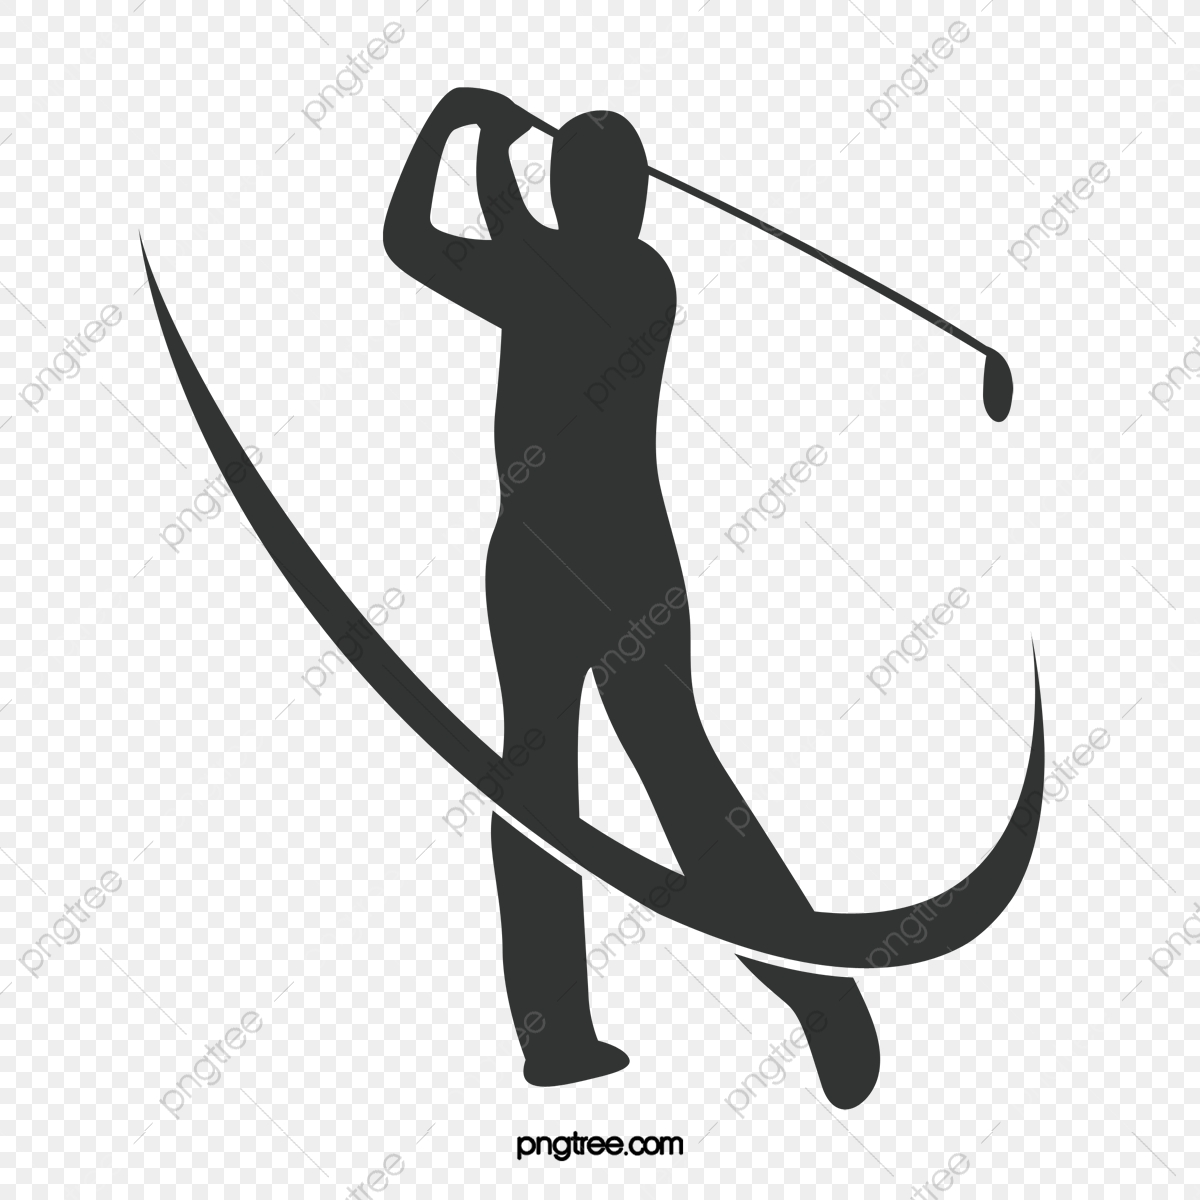 Golf, Golf Clipart, Sketch, Movement PNG Transparent Clipart Image.